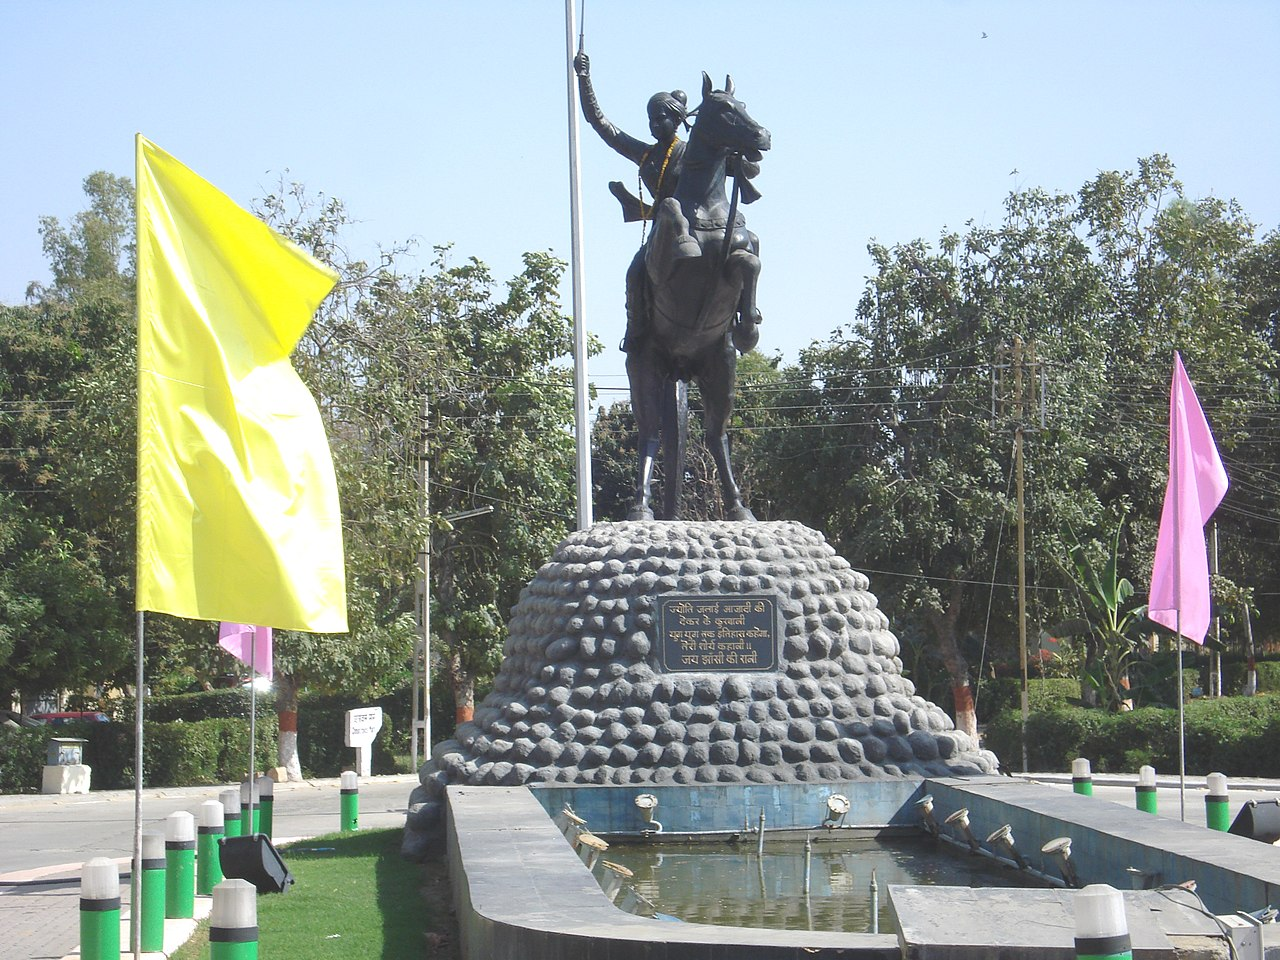 Statue of Rani Lakshmibai, 2008, Laxmi Bai National University of Physical Education, Gwalior, India